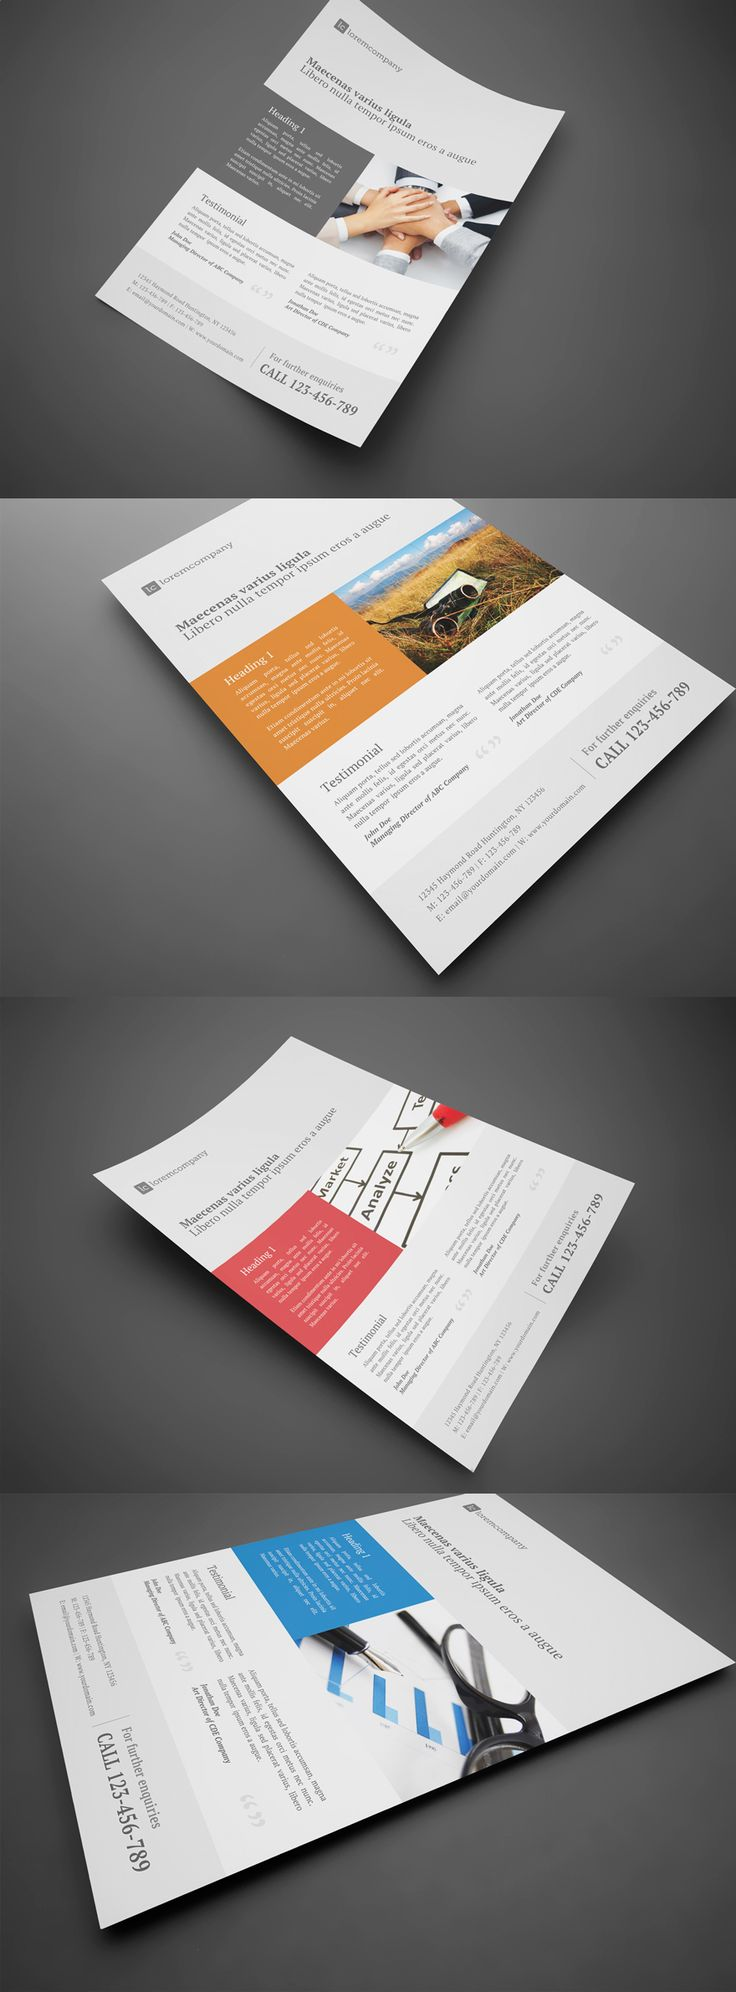 Clean Professional Corporate Flyer  by glenngoh (via Creattica)